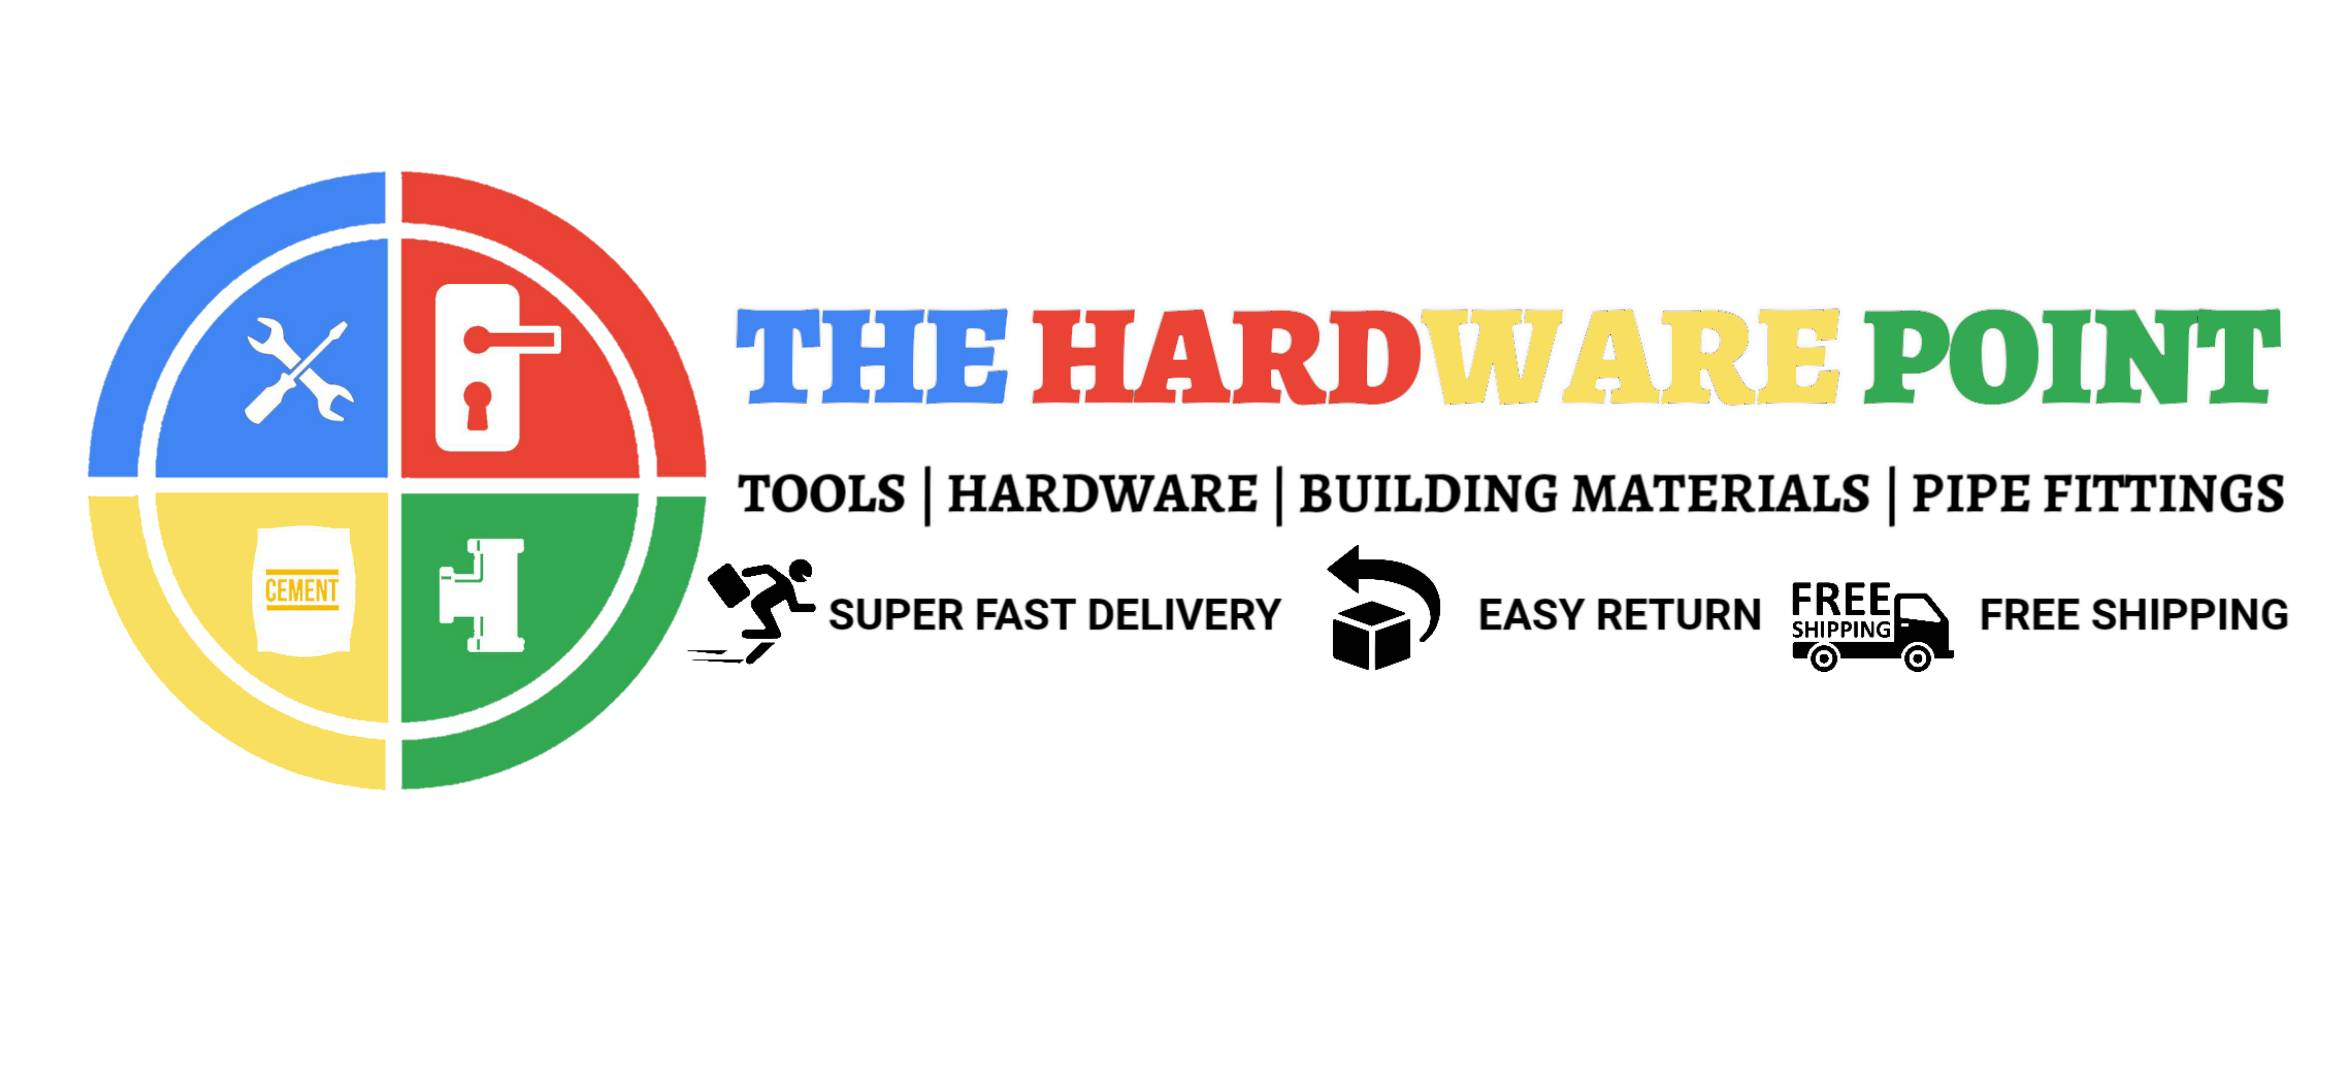 The hardware point